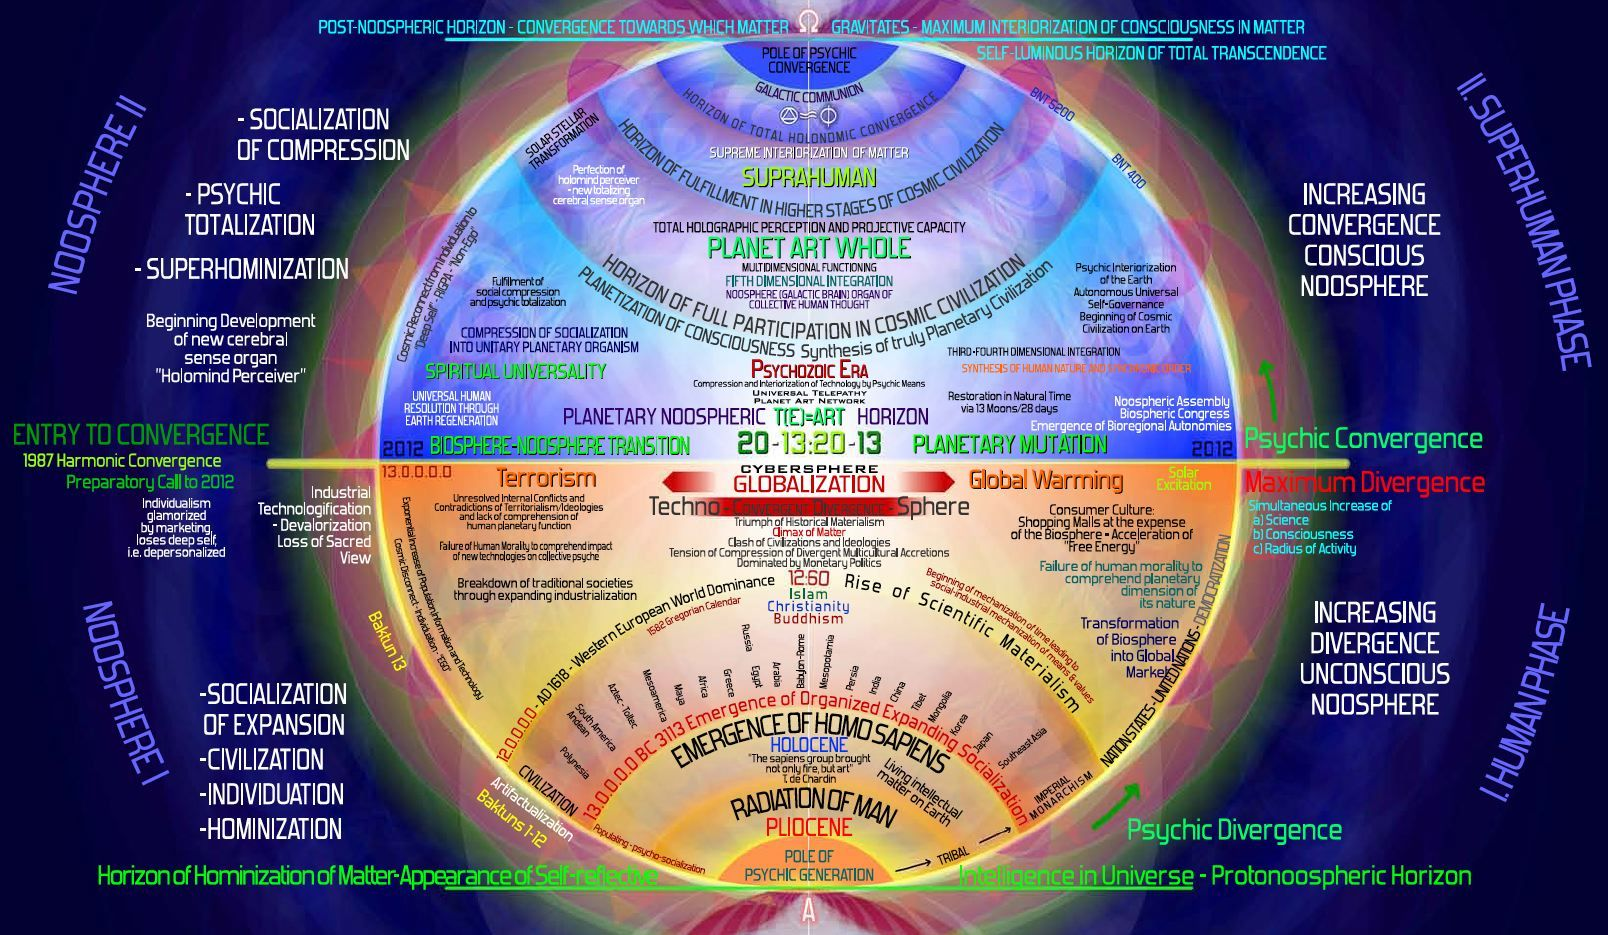 Hive Mind Philosophy Cosmic Consciousness Metaphysical Spirituality Akashic Field